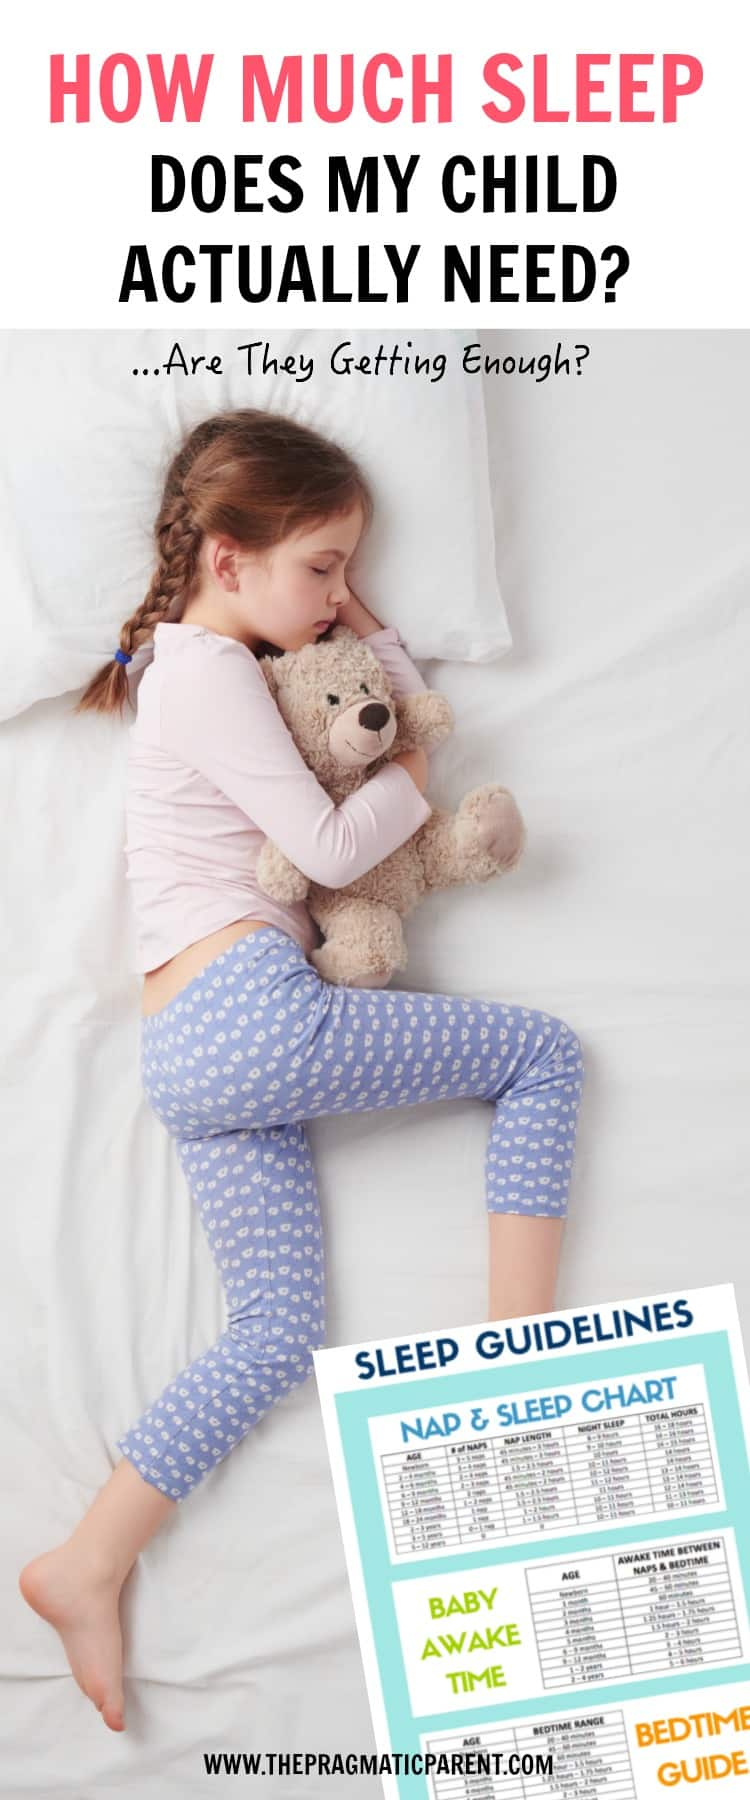 Sleep Guidelines and a Sleep, Bedtime, Nap and Hour Sleep Chart for Babies, Toddlers, Preschoolers and School Age Kids